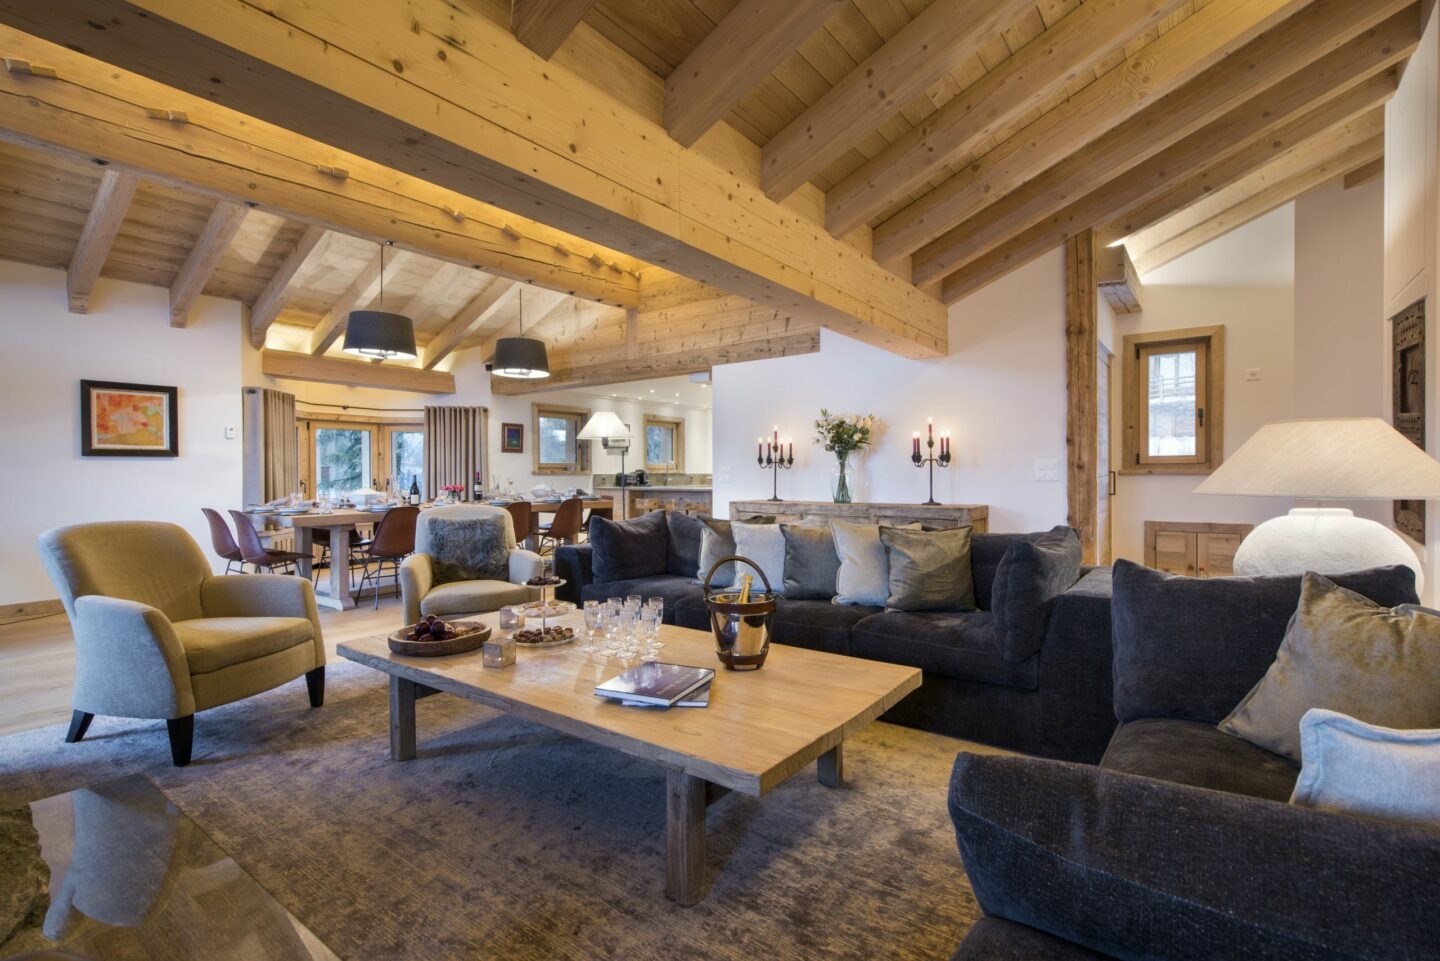 Lounge room space at Chalet Delormes in Verbier